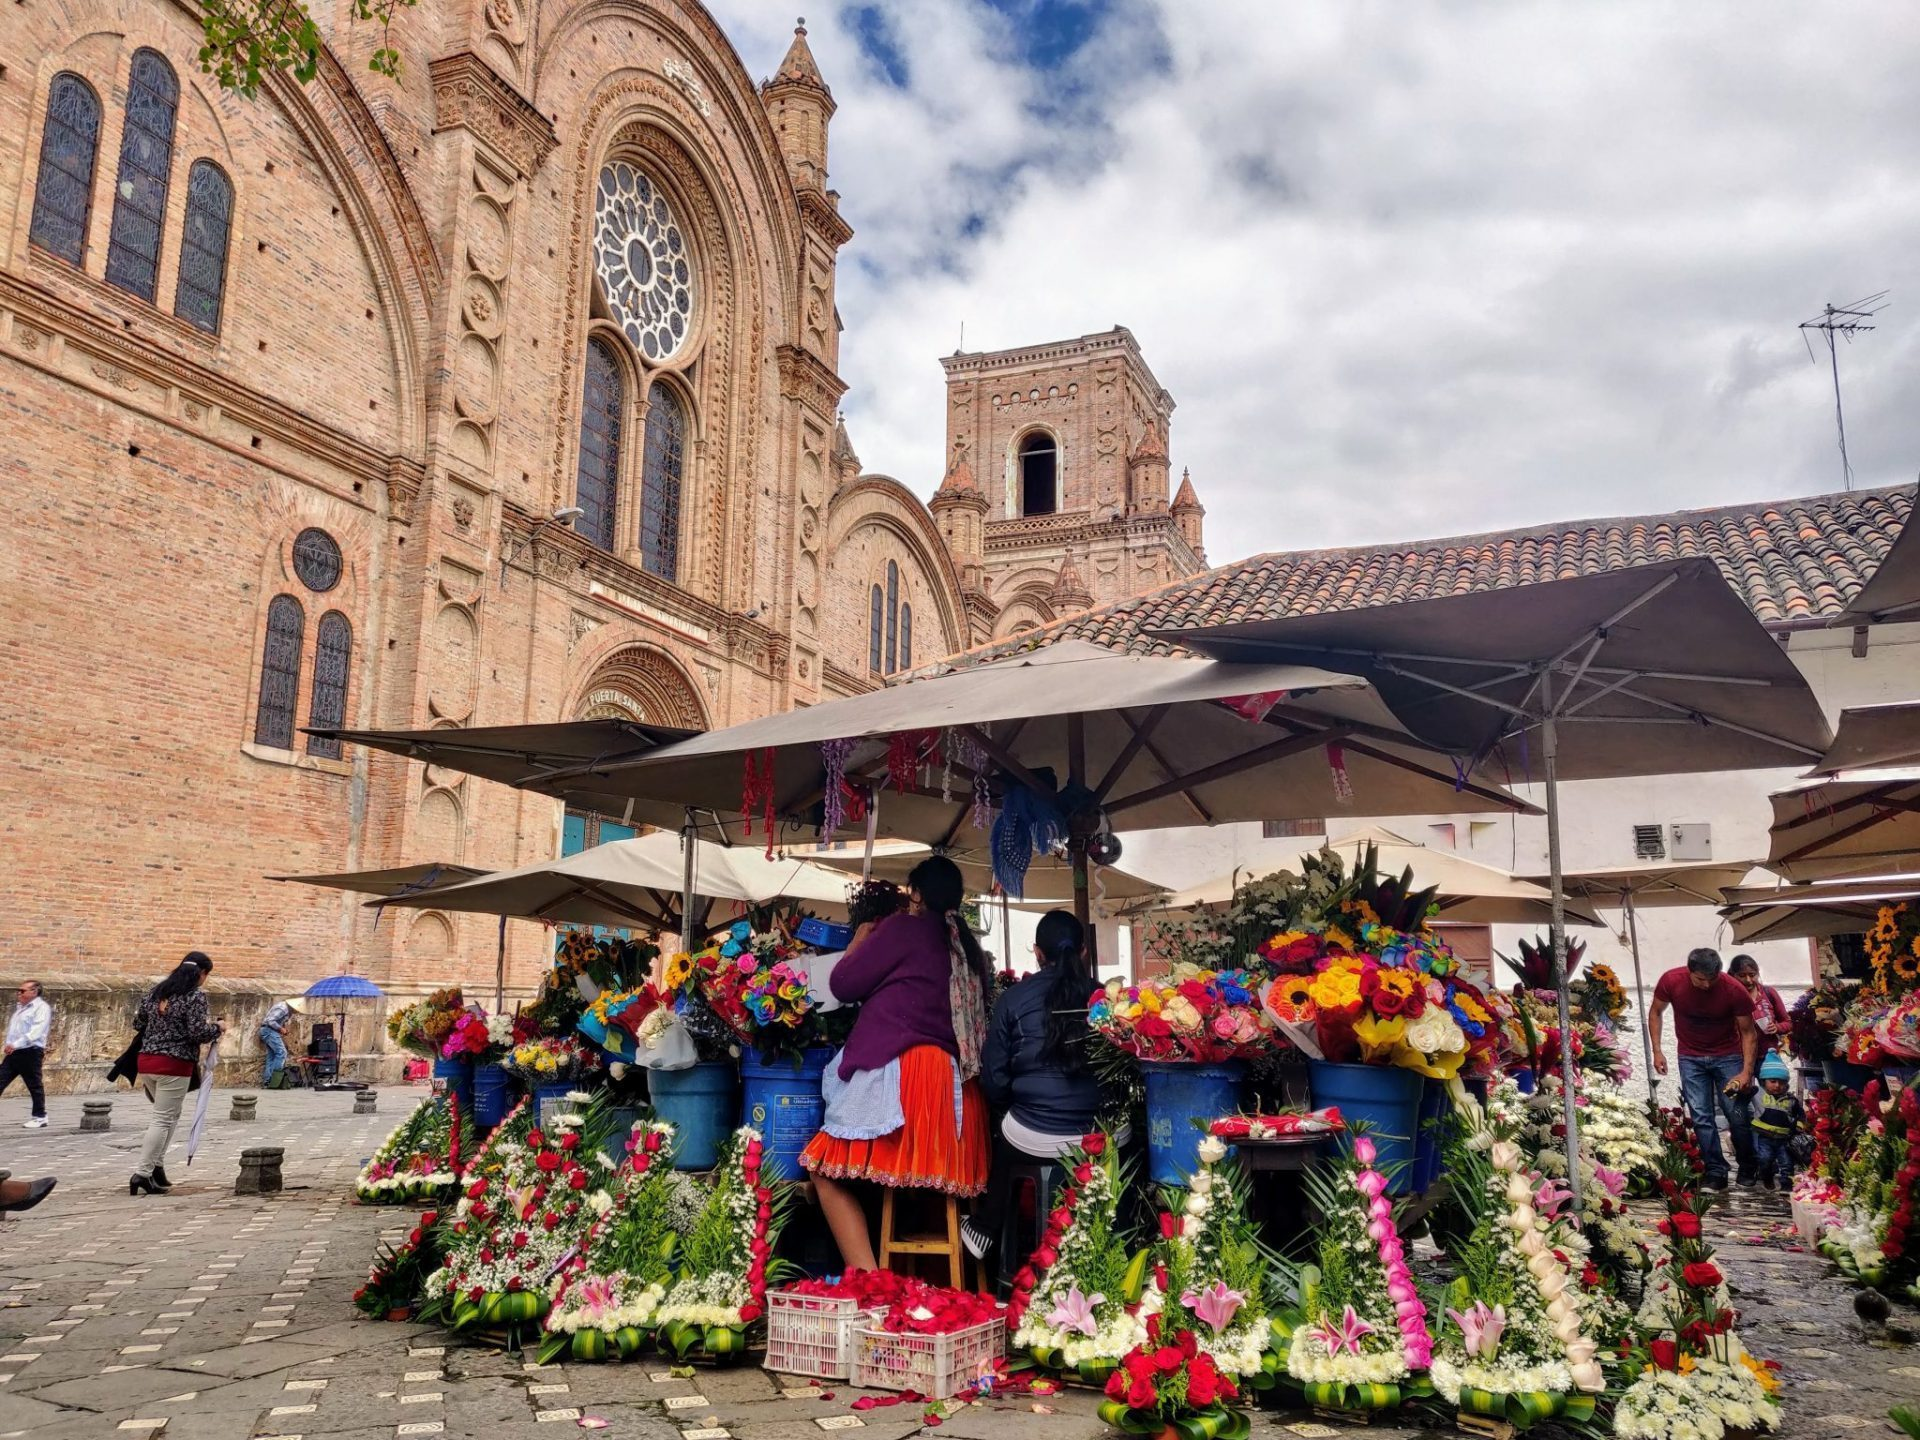 20 Best Things to do in Cuenca Ecuador: Travel Guide & Tips